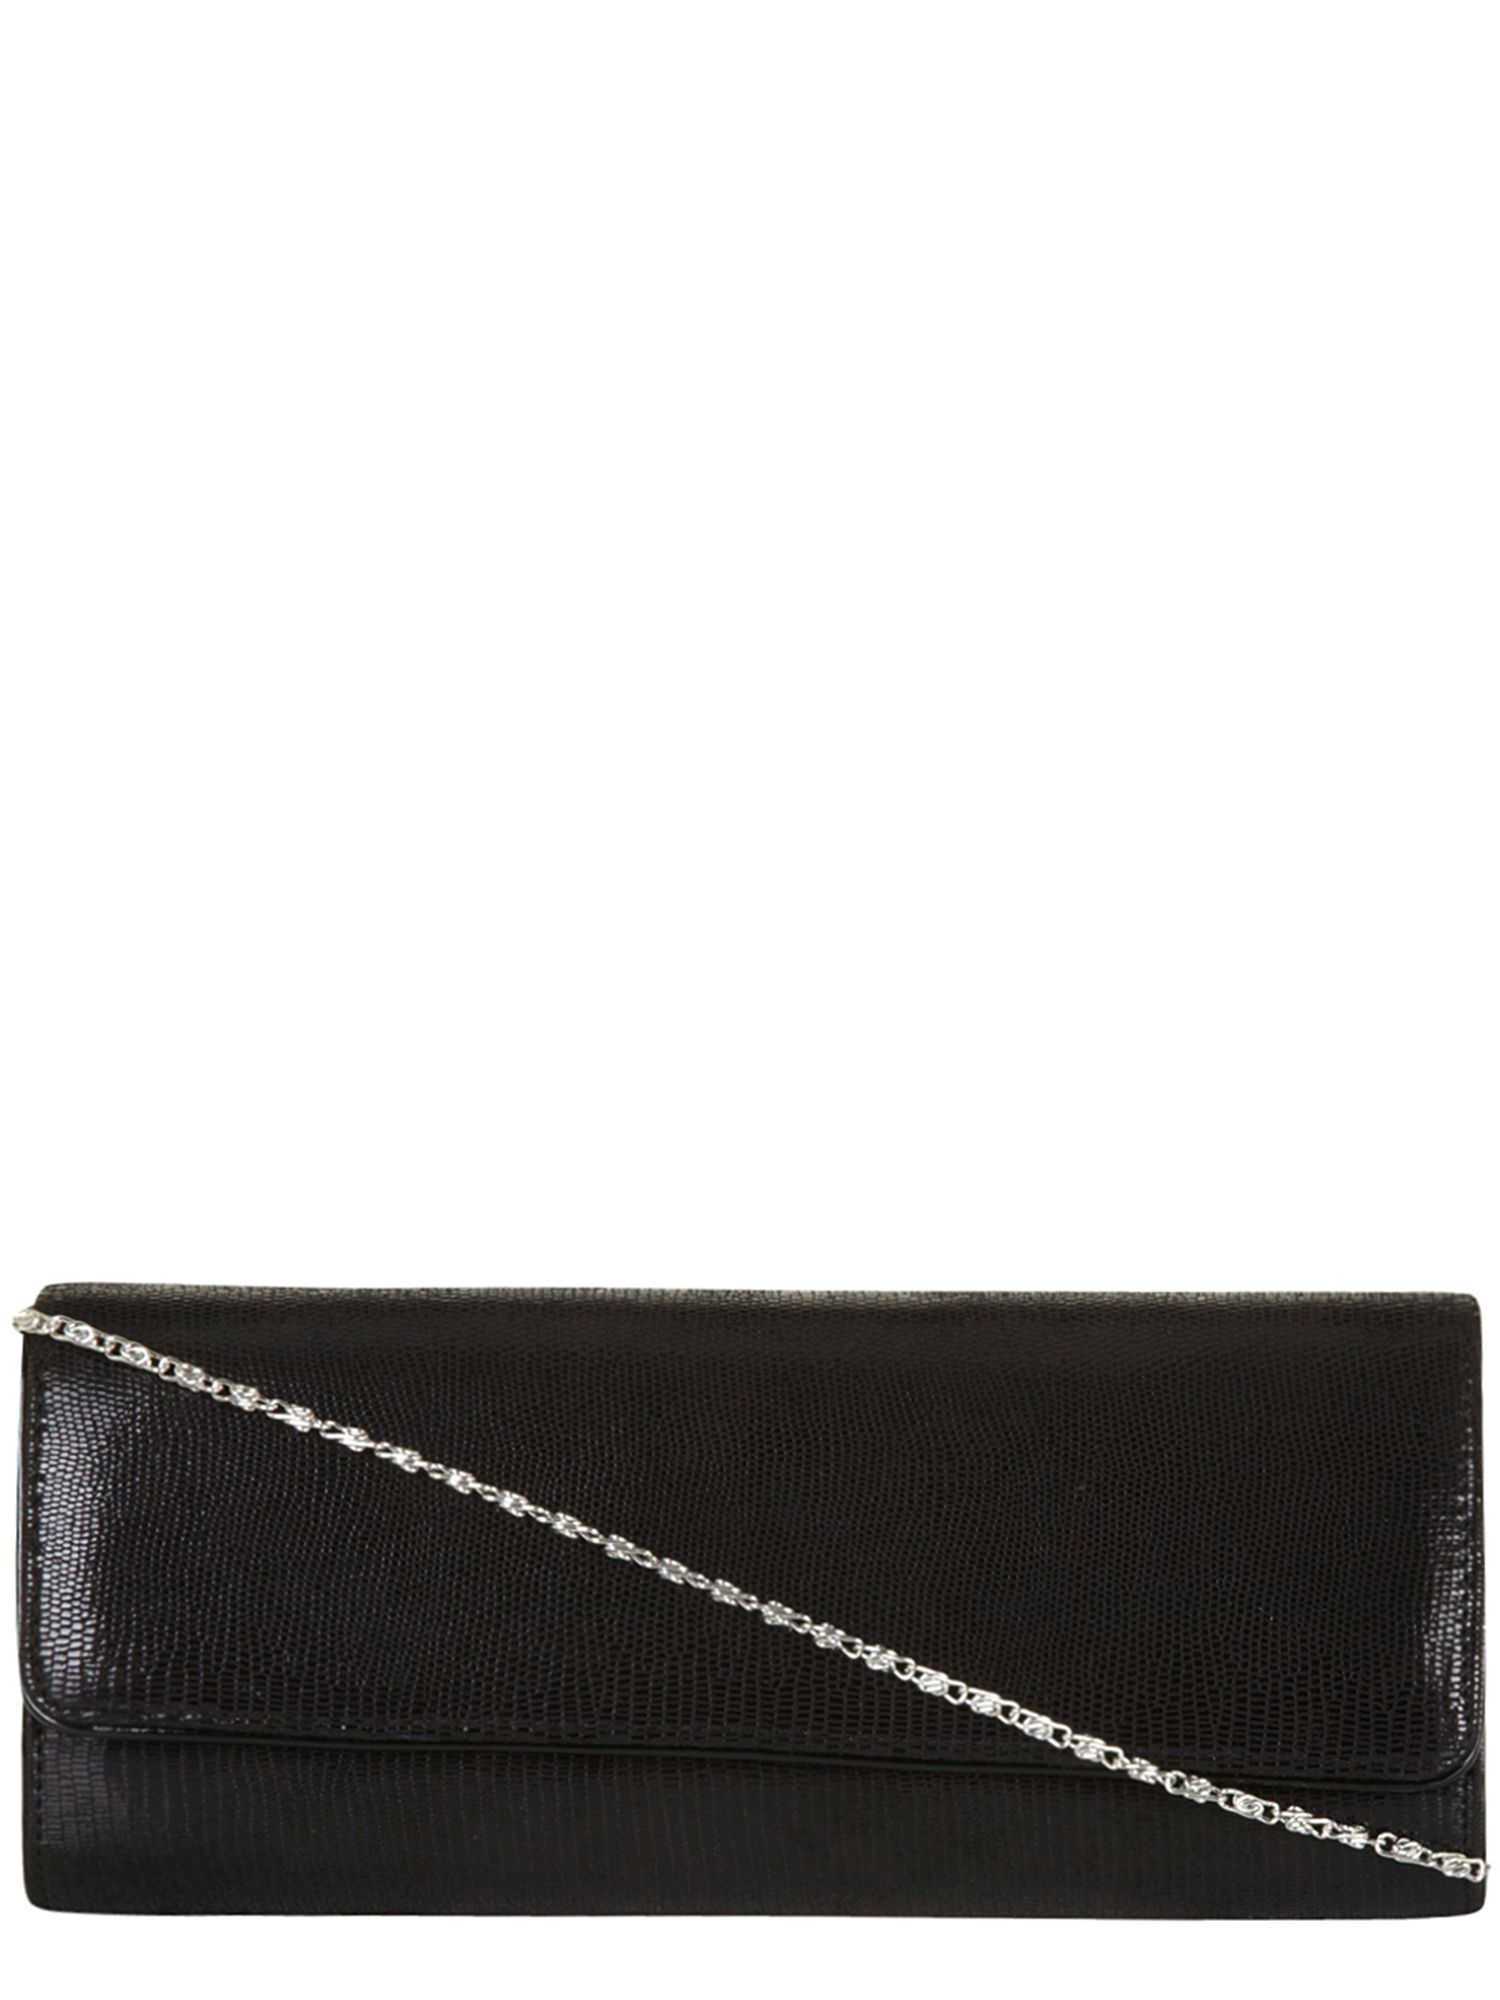 Lizard Effect Clutch Bag